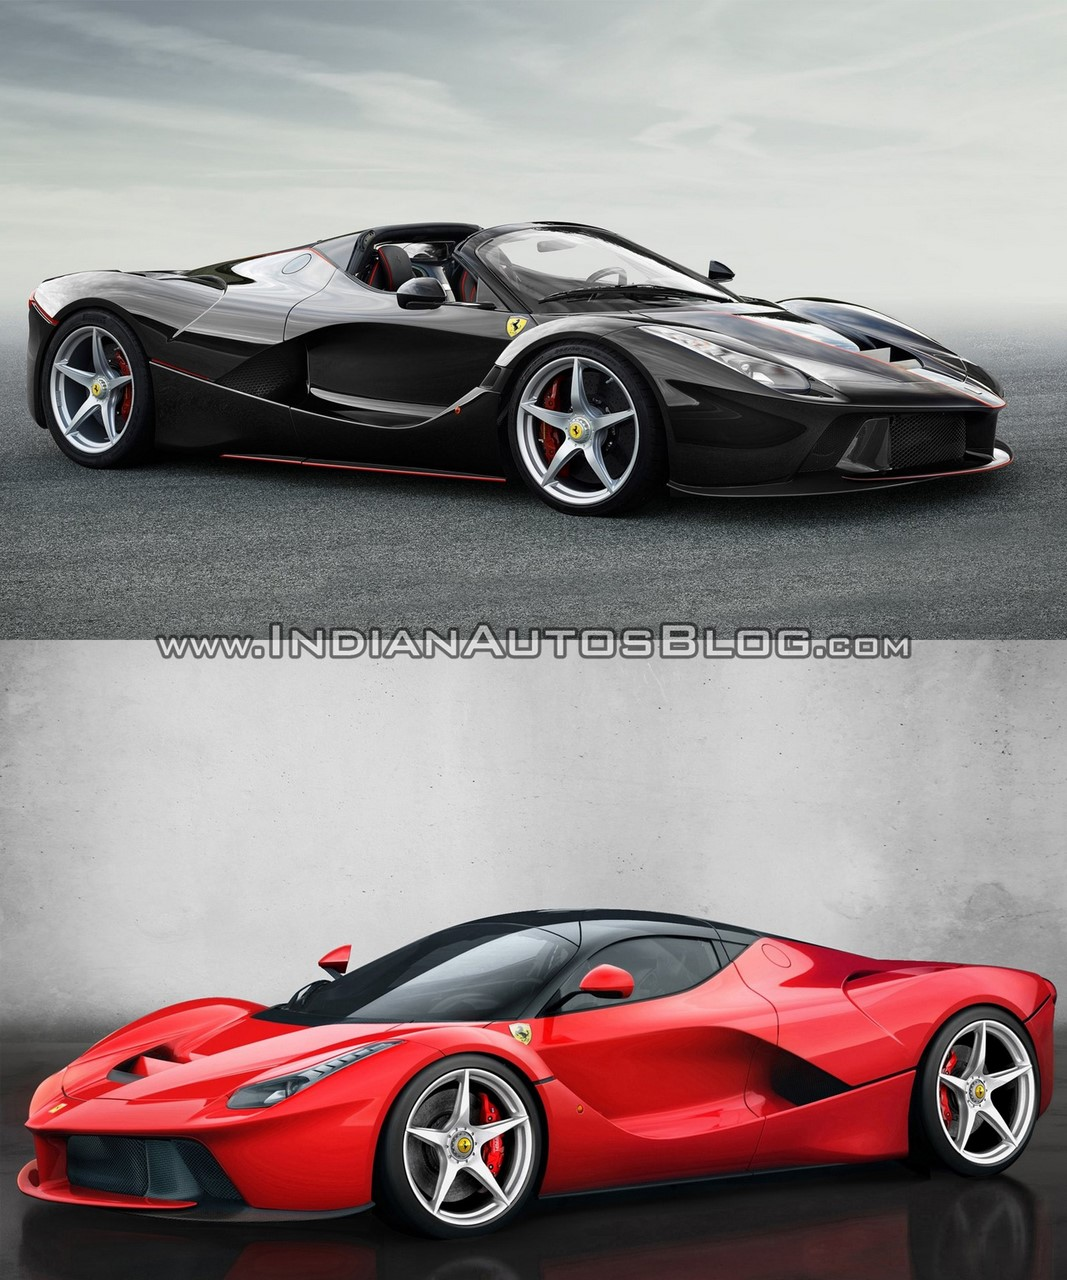 Ferrari LaFerrari Aperta (Spider) vs. Ferrari LaFerrari coupe exterior front three quarters